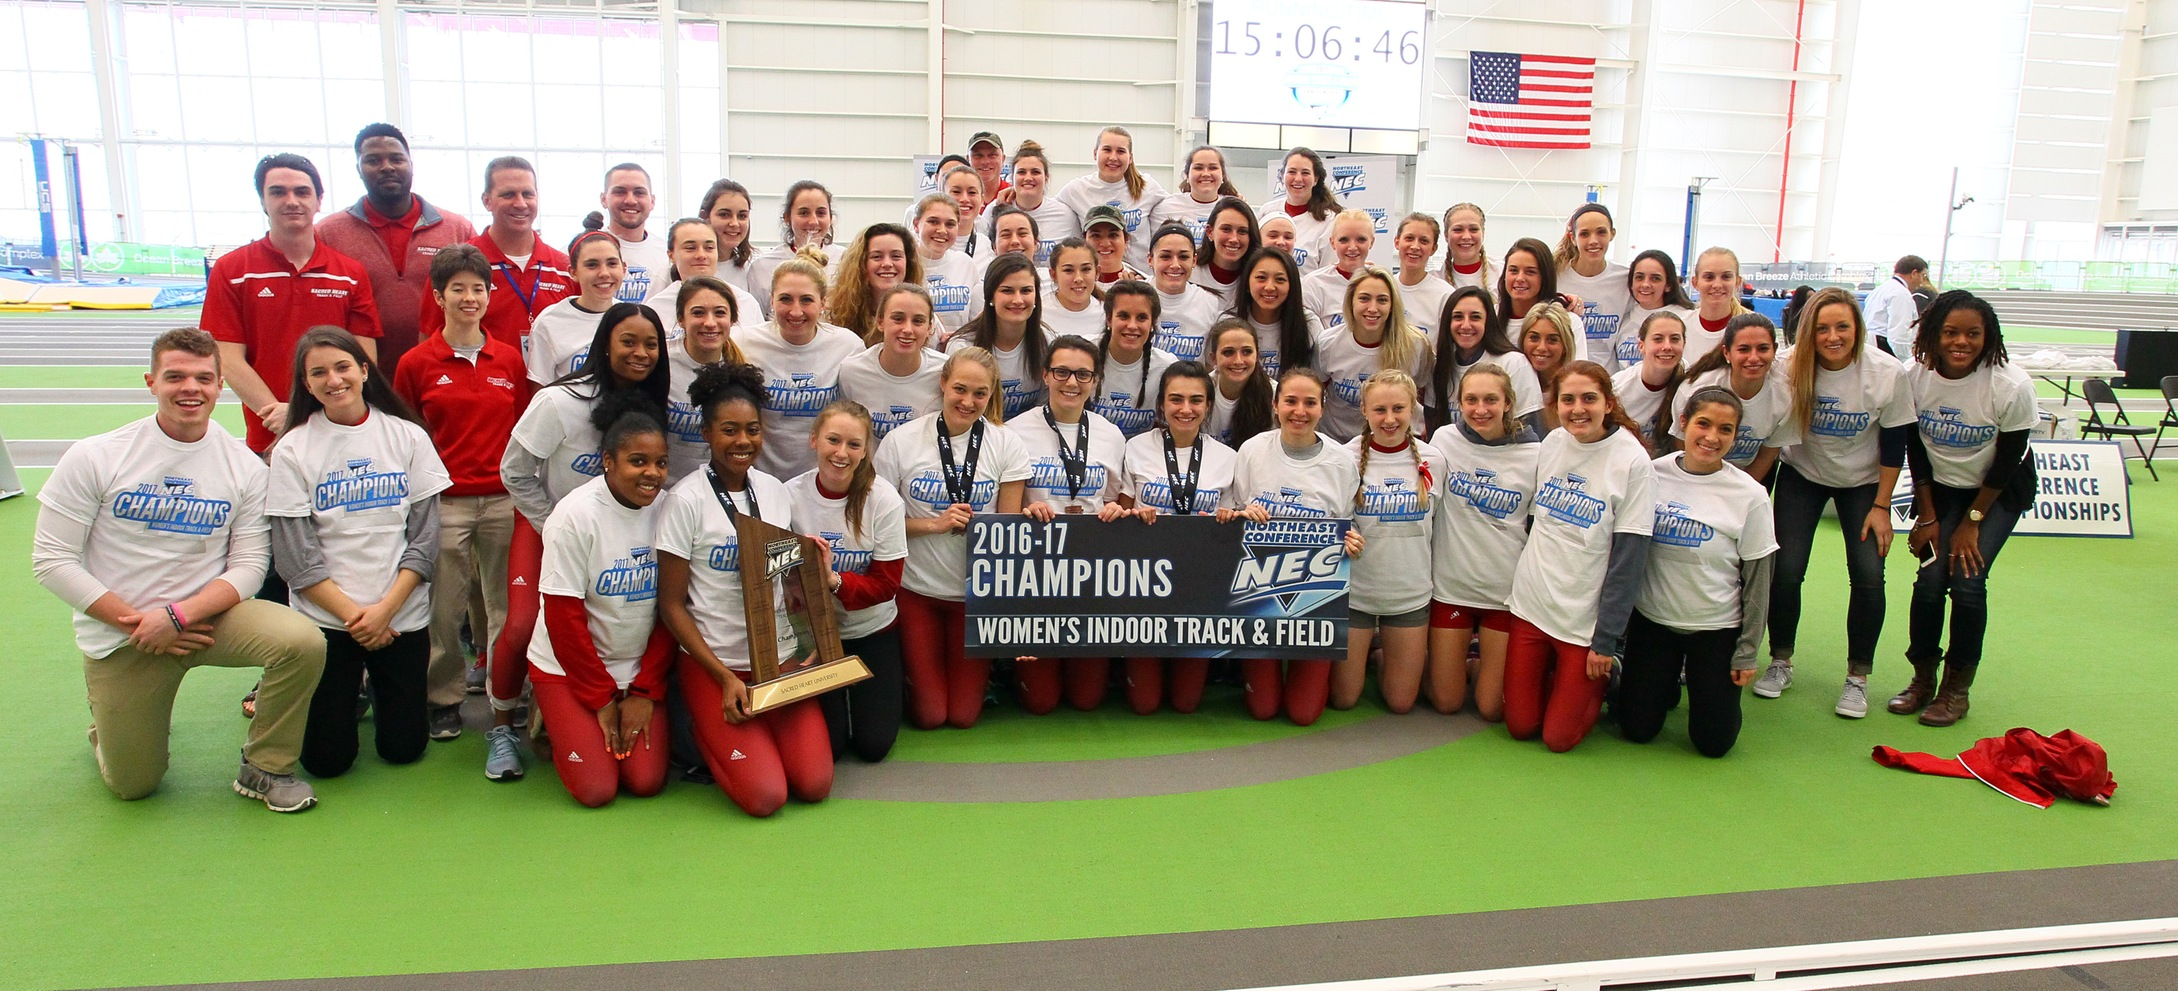 Women's Track & Field Four Peat at NEC Championships